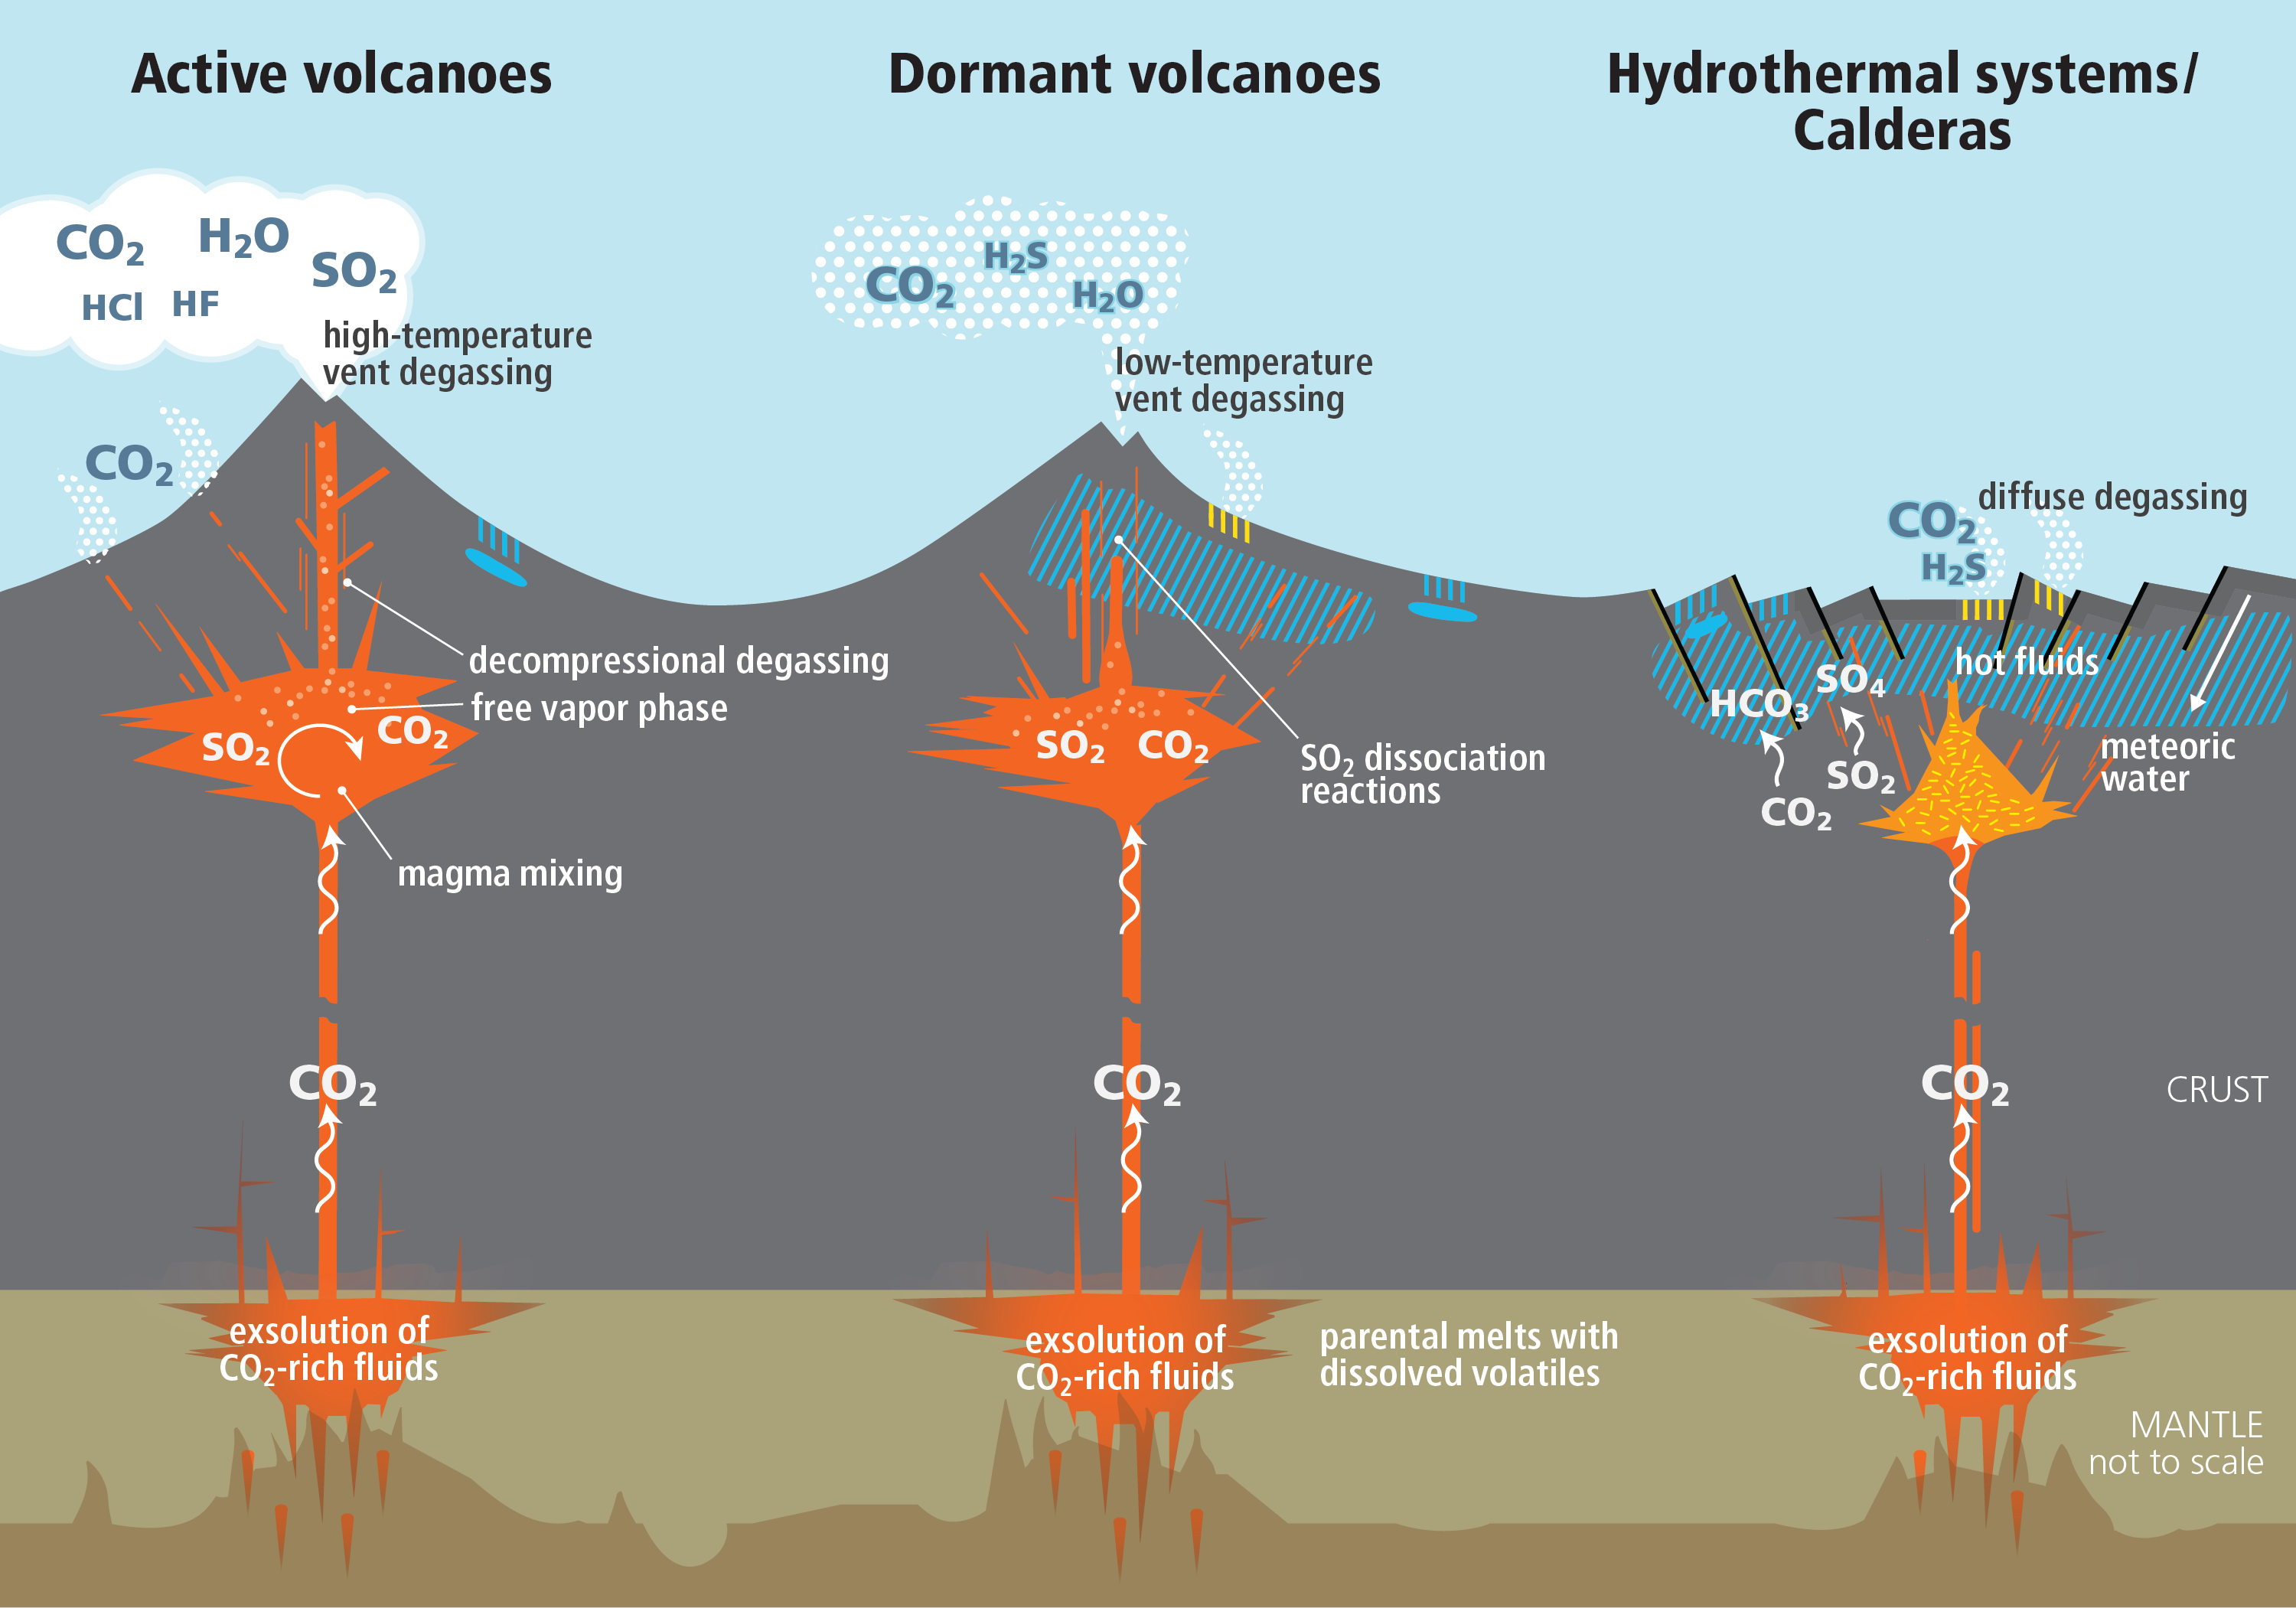 CO2 emission patterns from volcanic and magmatic systems